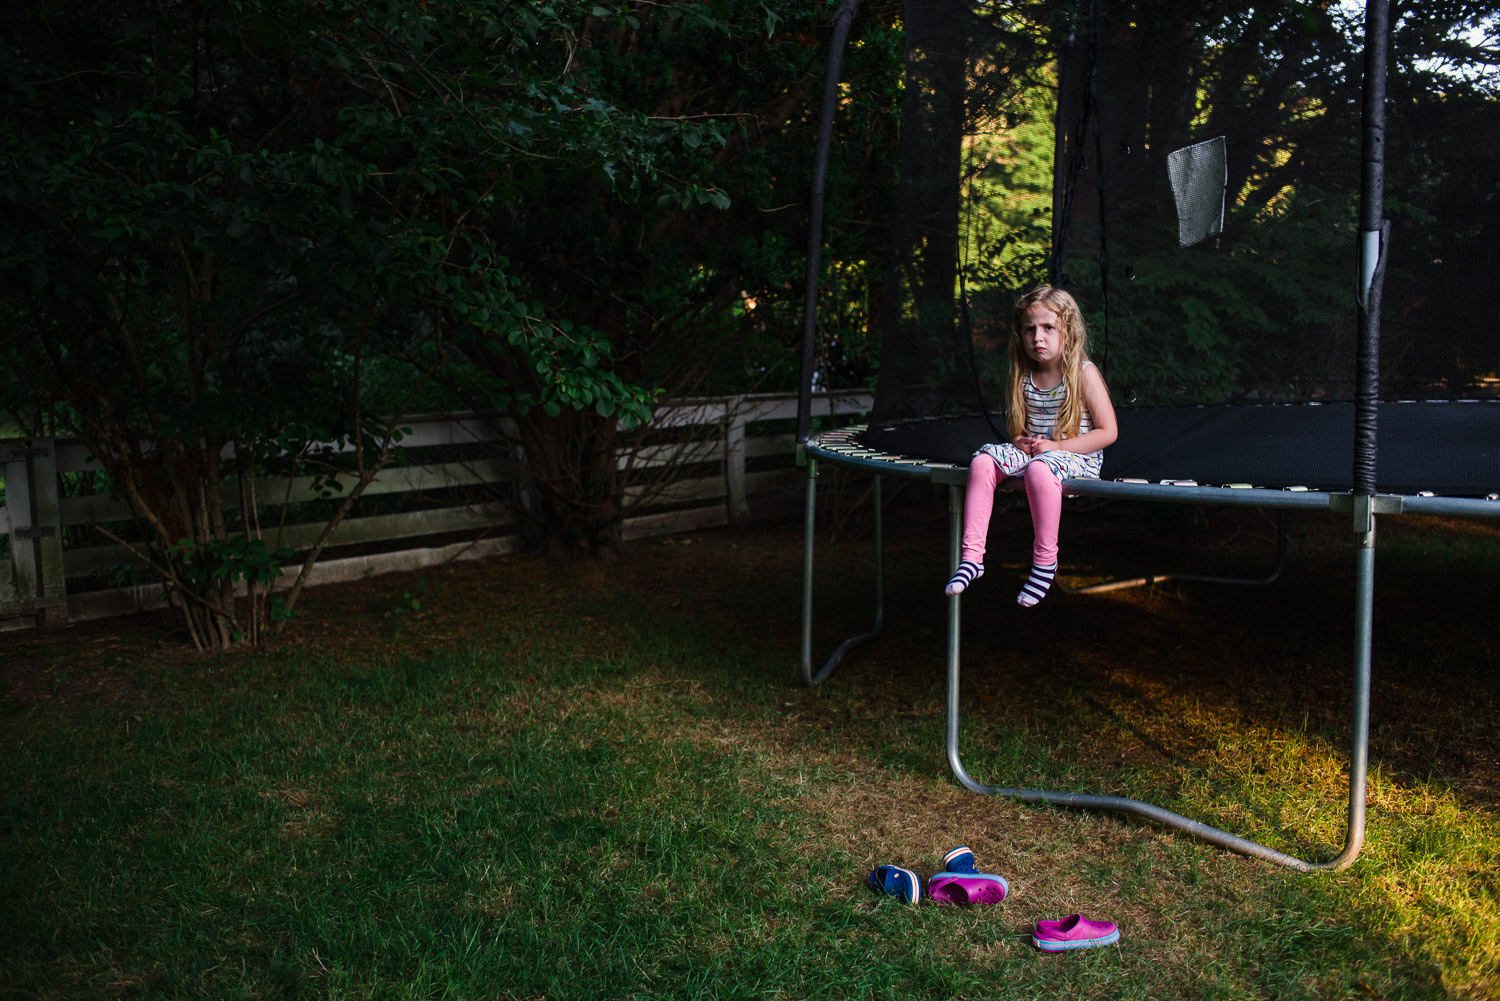 A little girl sits grumpily on the edge of a trampoline.